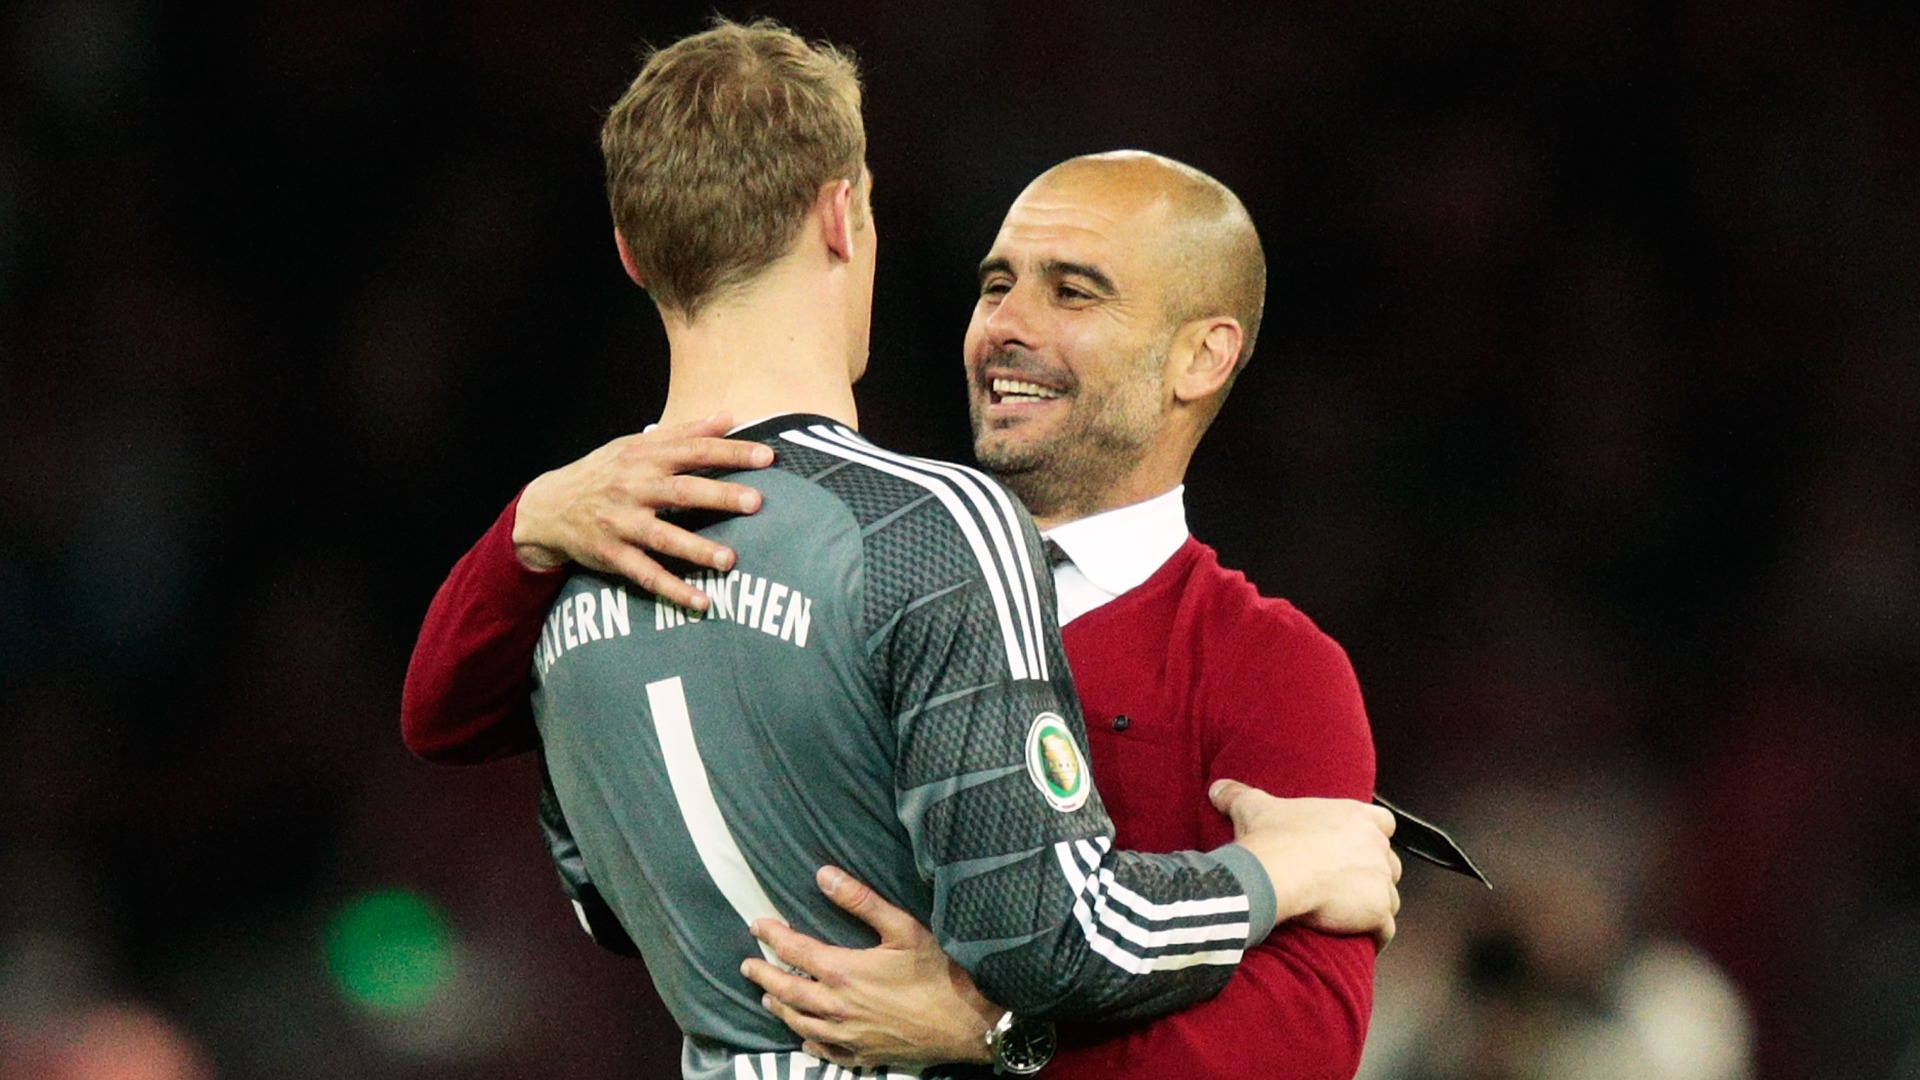 Bayern 'going very well' under Flick amid Guardiola talk, says Neuer